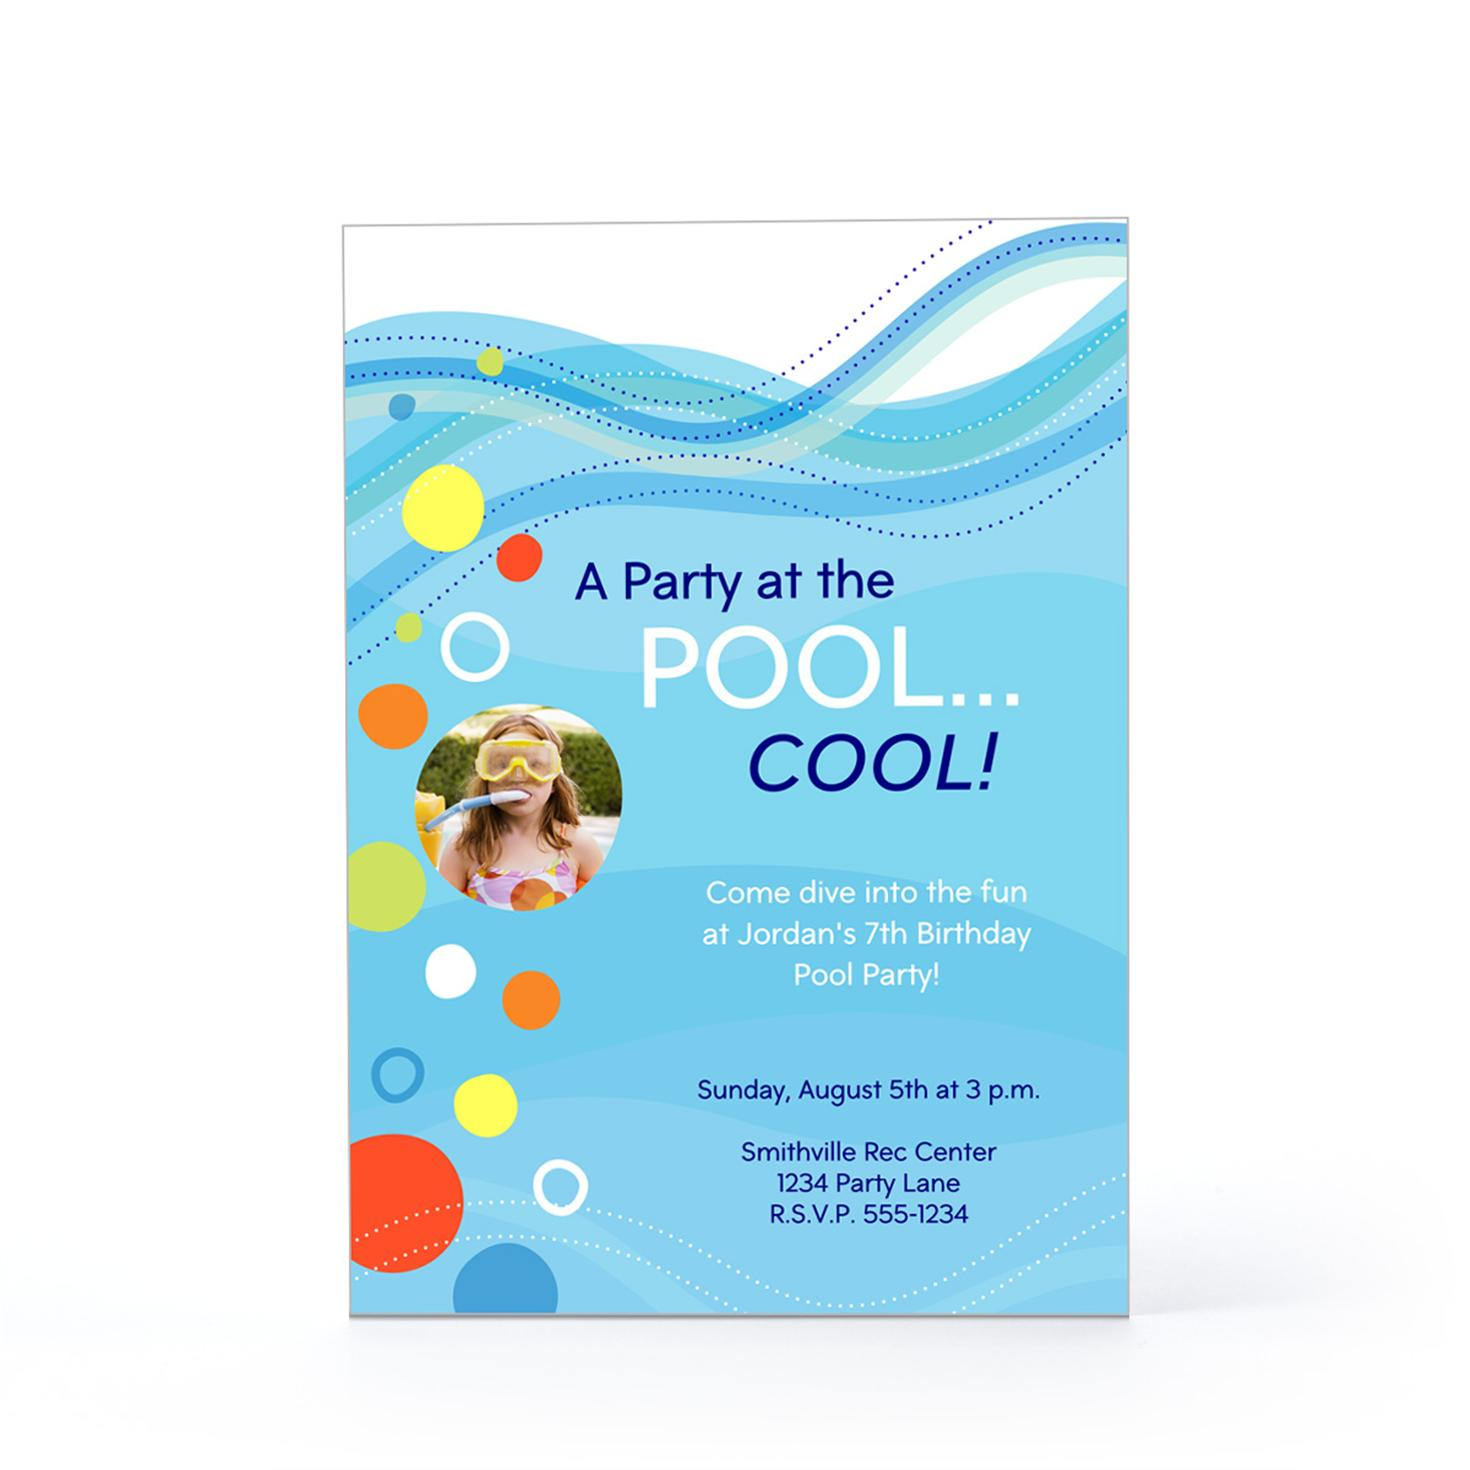 baby shower pool party invitation wording pool party birthday swimming pool party invitations wording